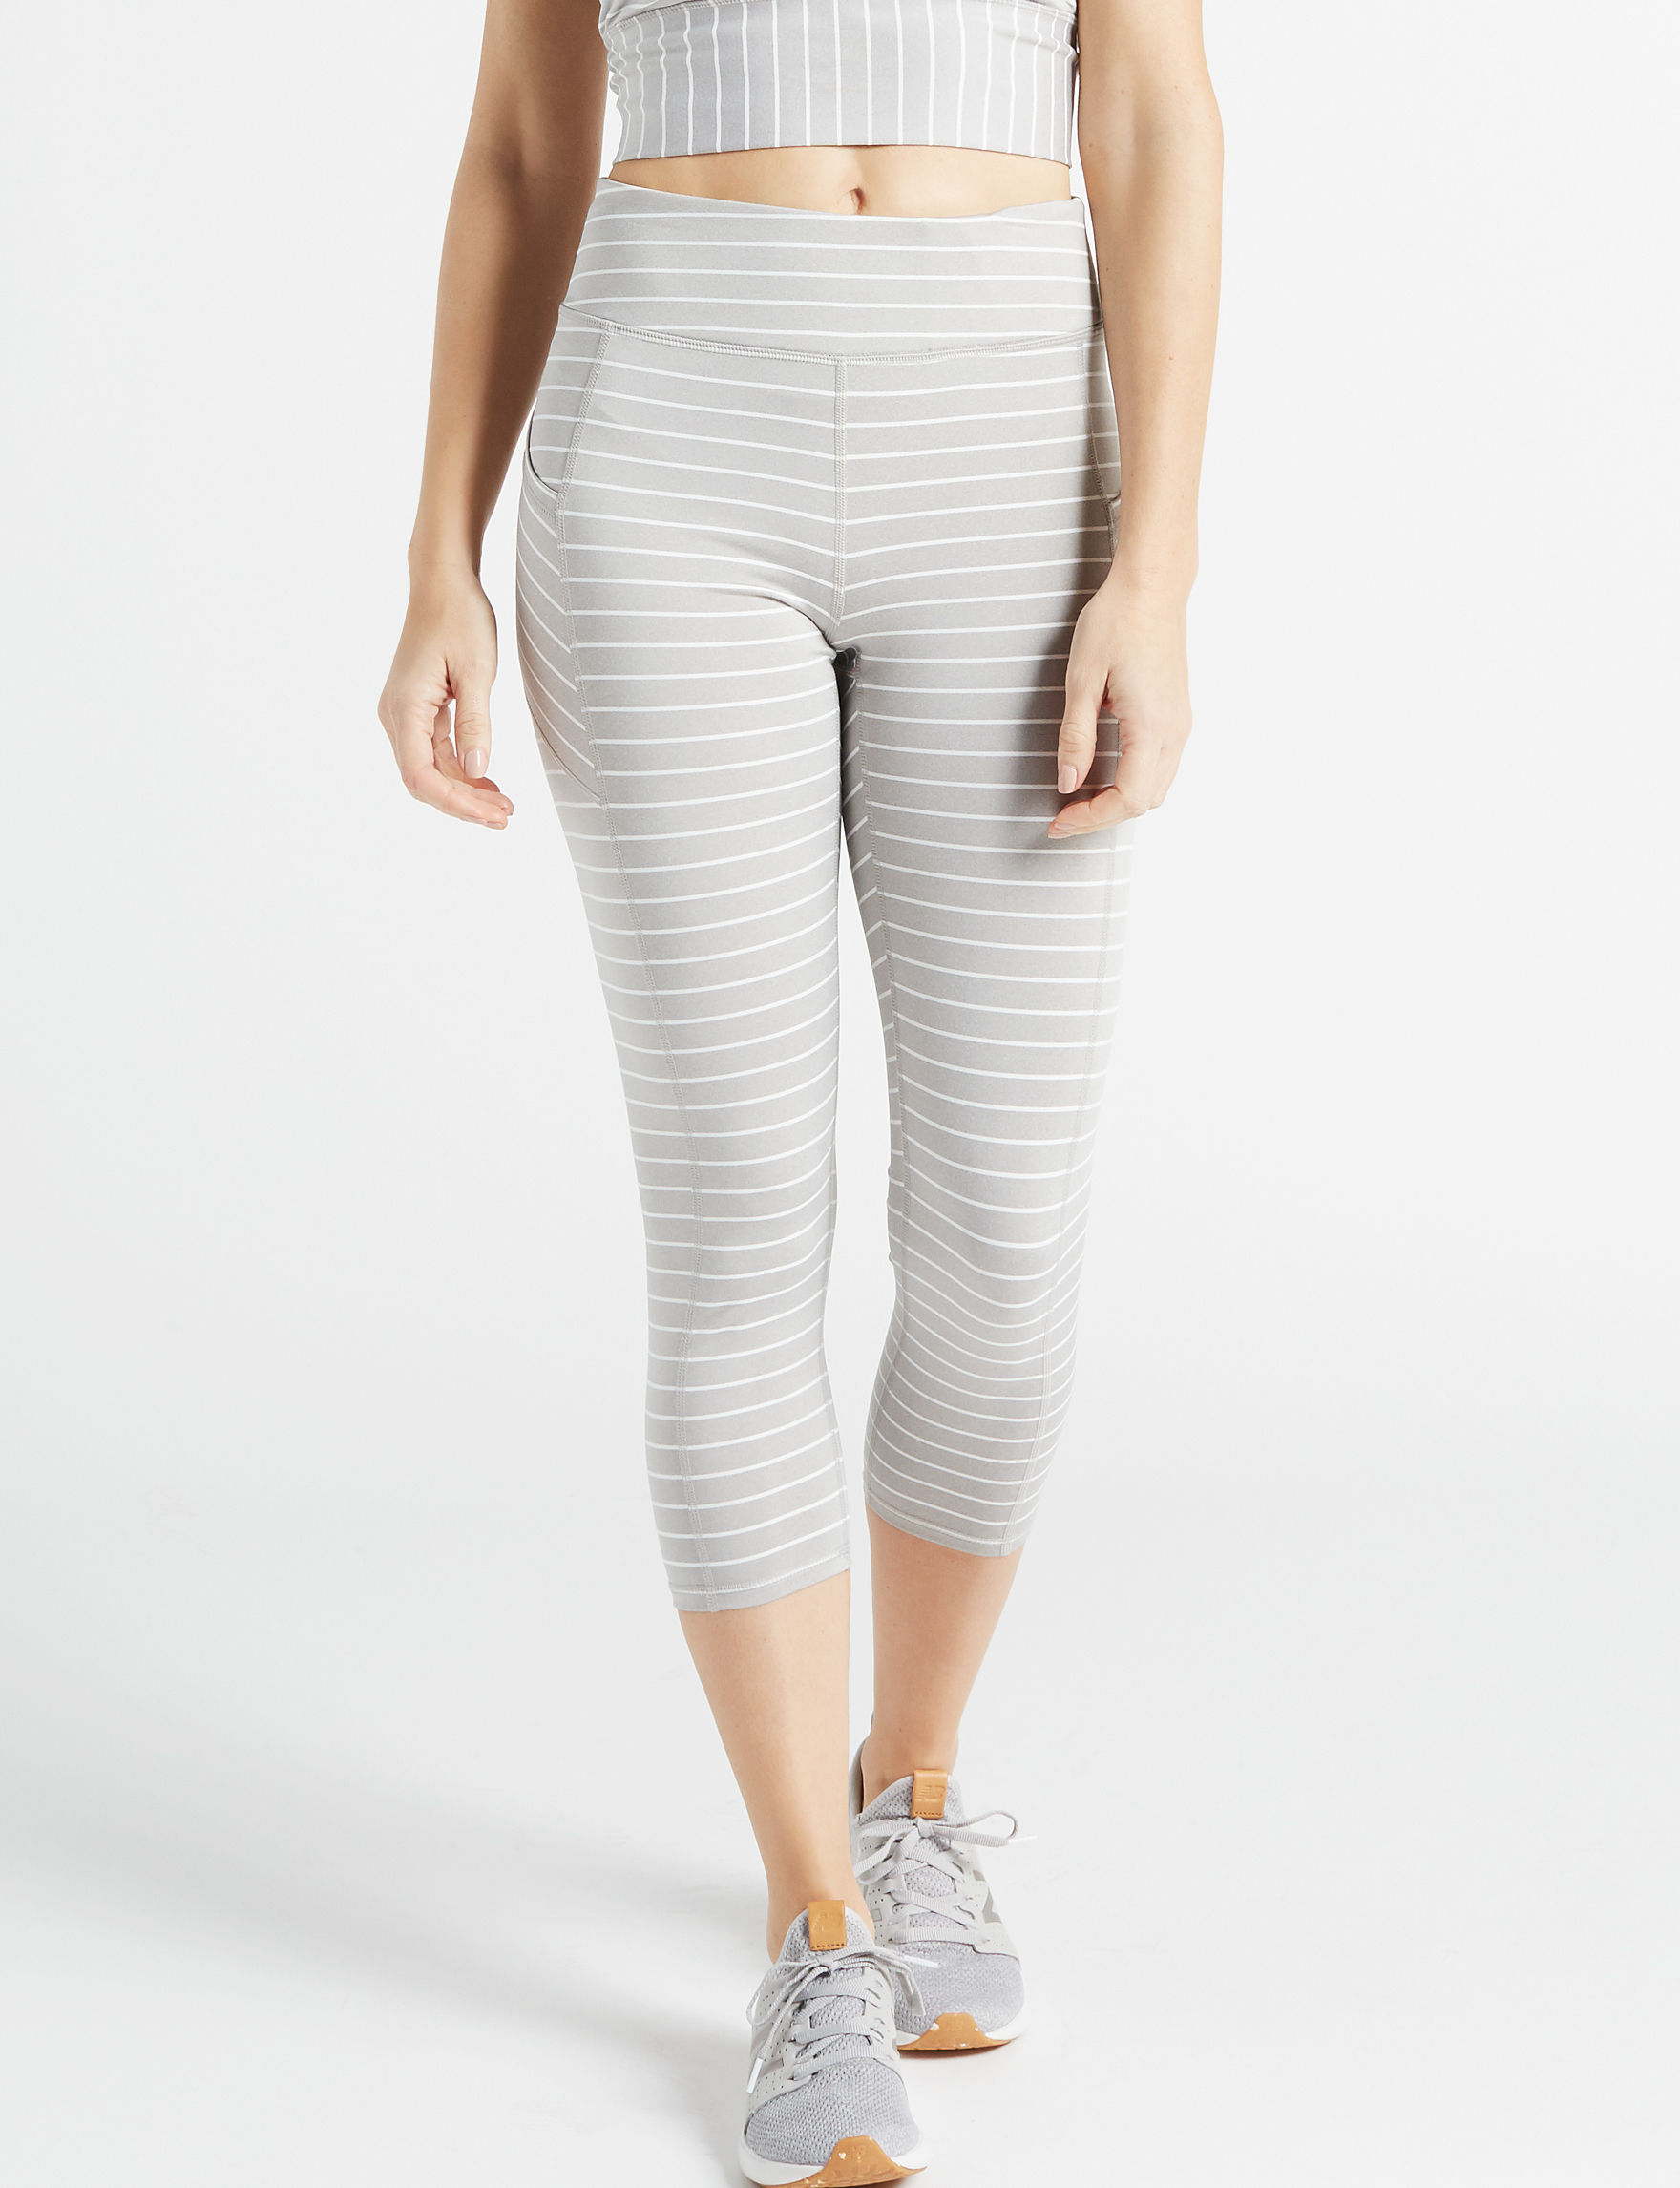 Gaiam Grey / White Active Capris & Crops Leggings